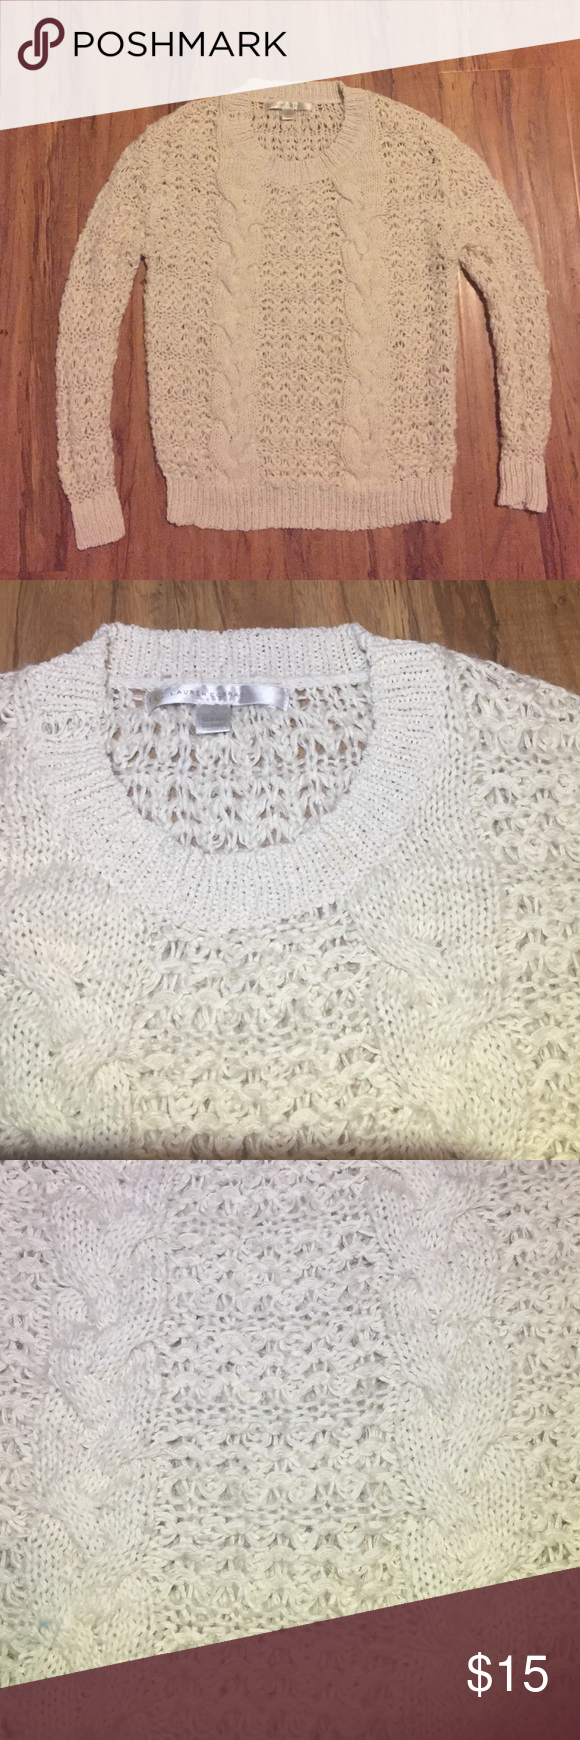 Lauren Conrad Cream color next sweater size S🍁🍂 Super cute knit cream sweater by Lauren Conrad. Label says small but it's fitted and could fit more like an xs. LC Lauren Conrad Tops Sweatshirts & Hoodies